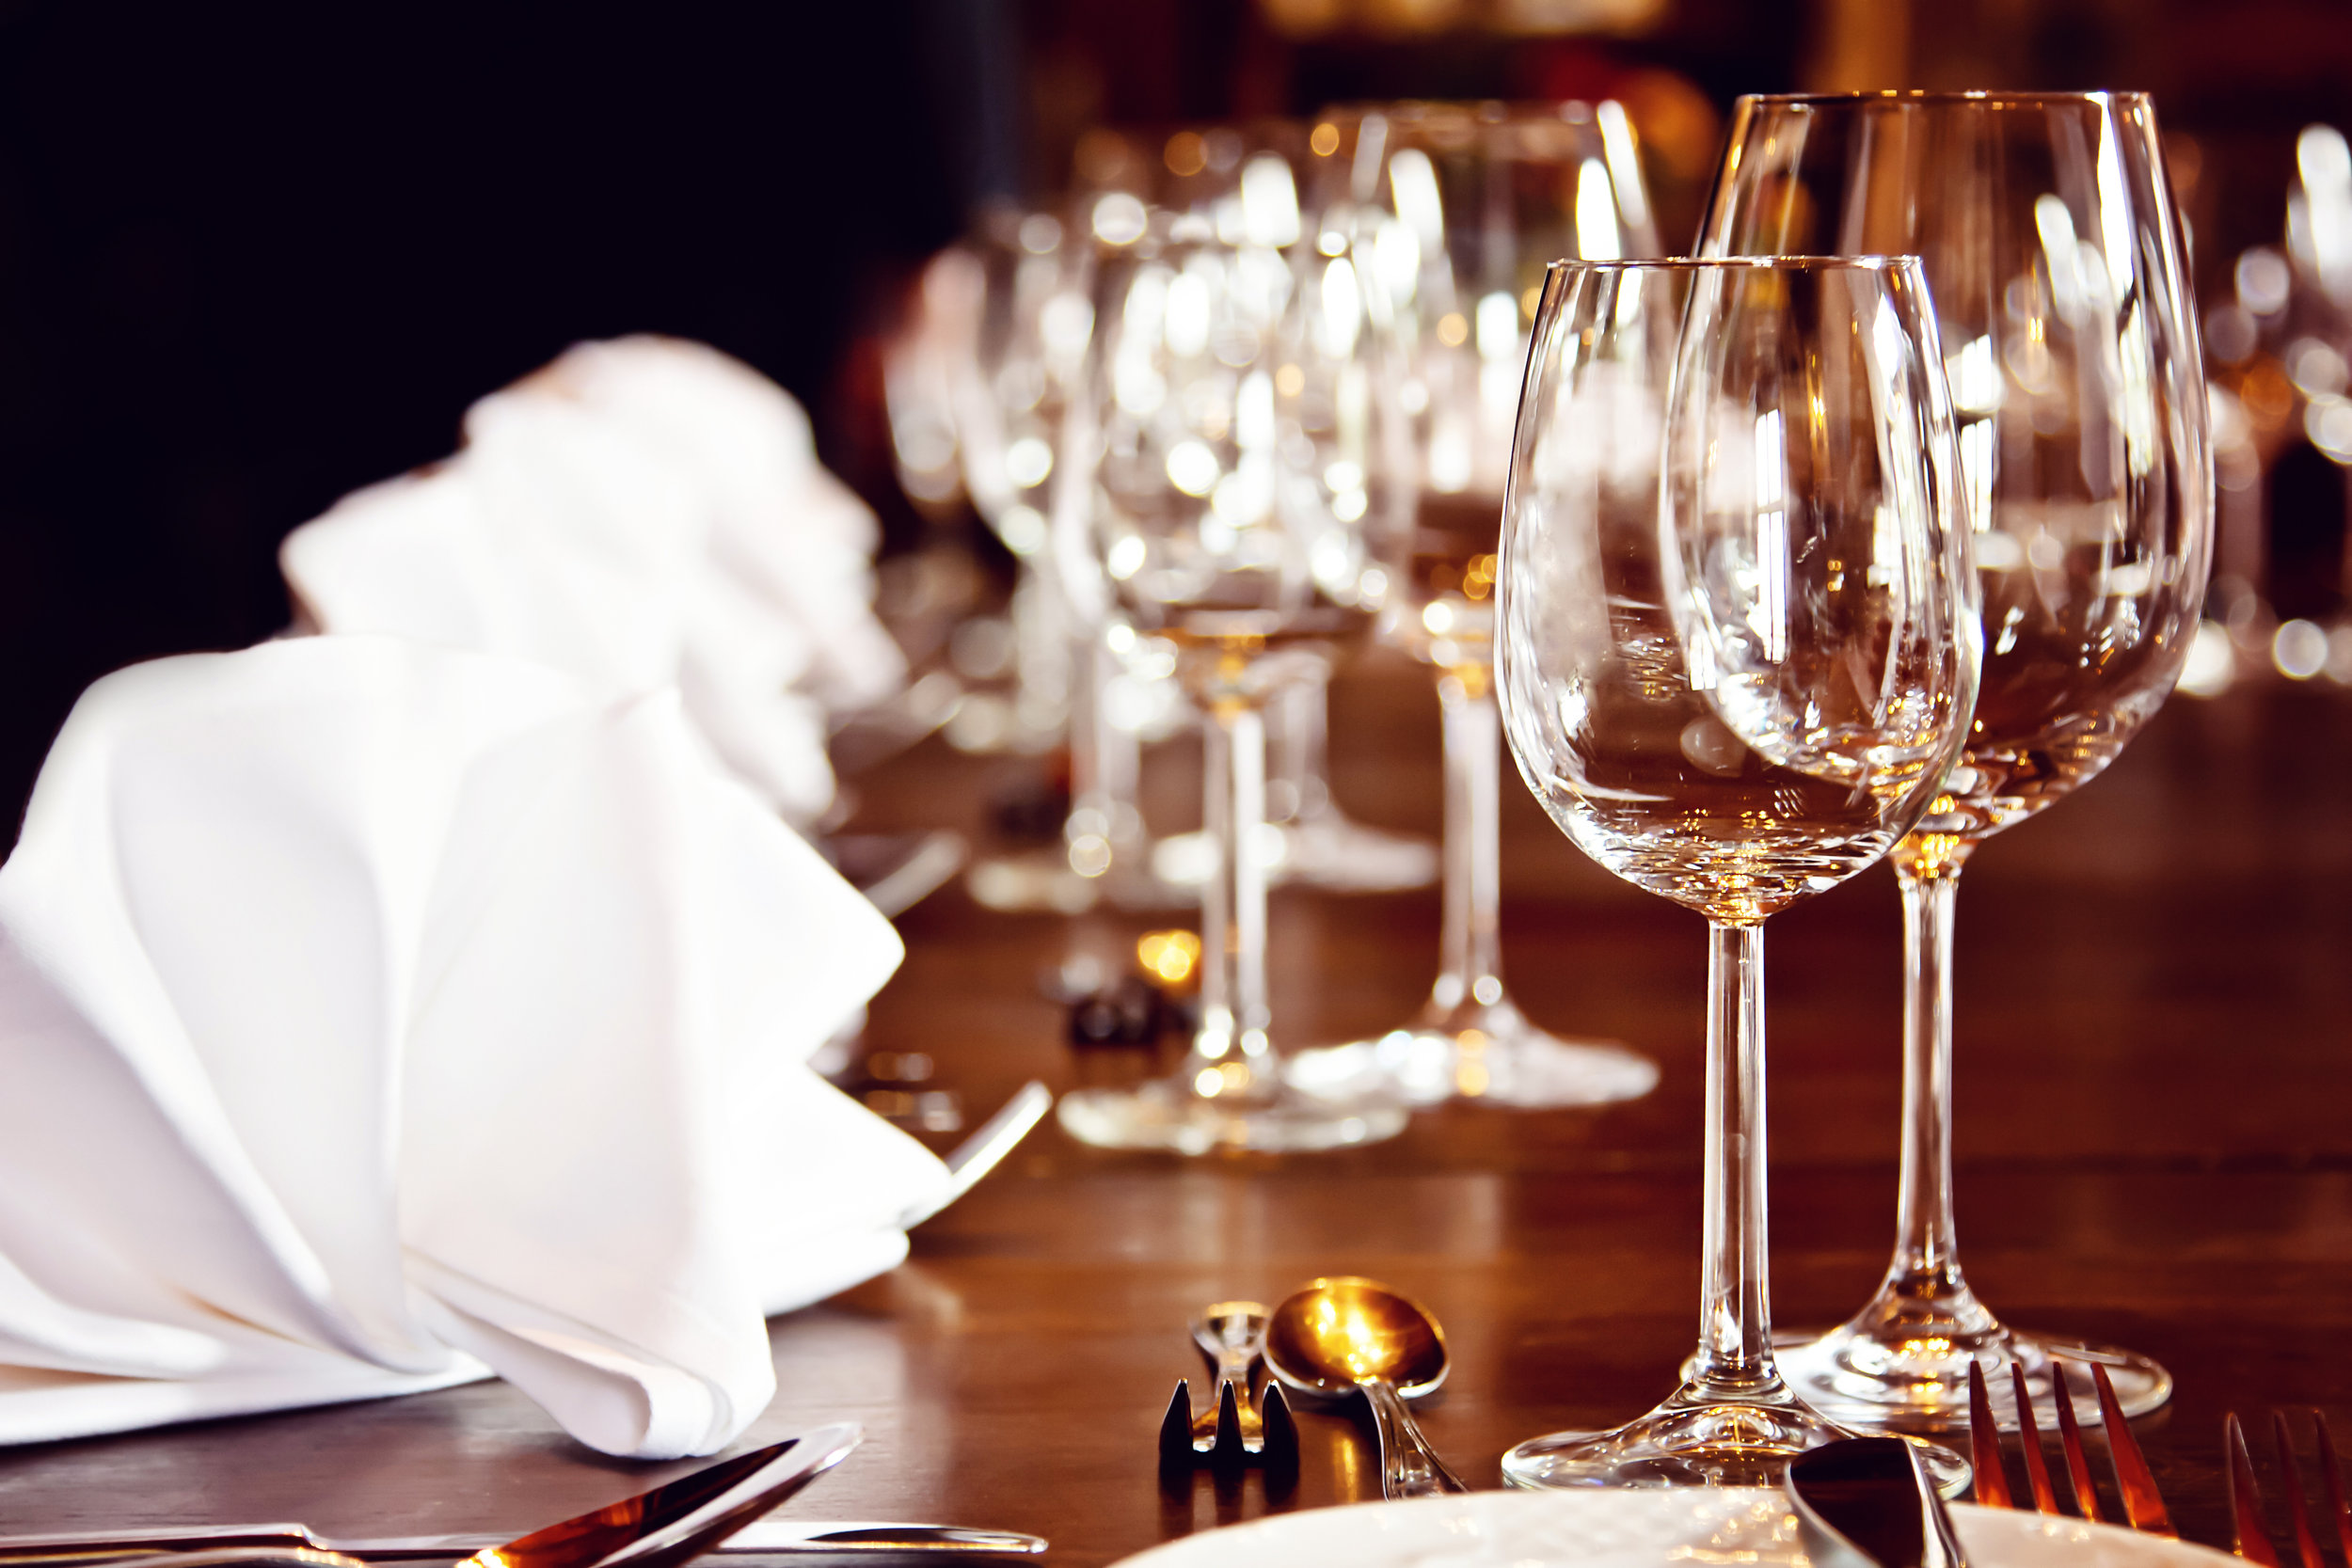 Glassware - An extensive list of glassware options for you to choose from!